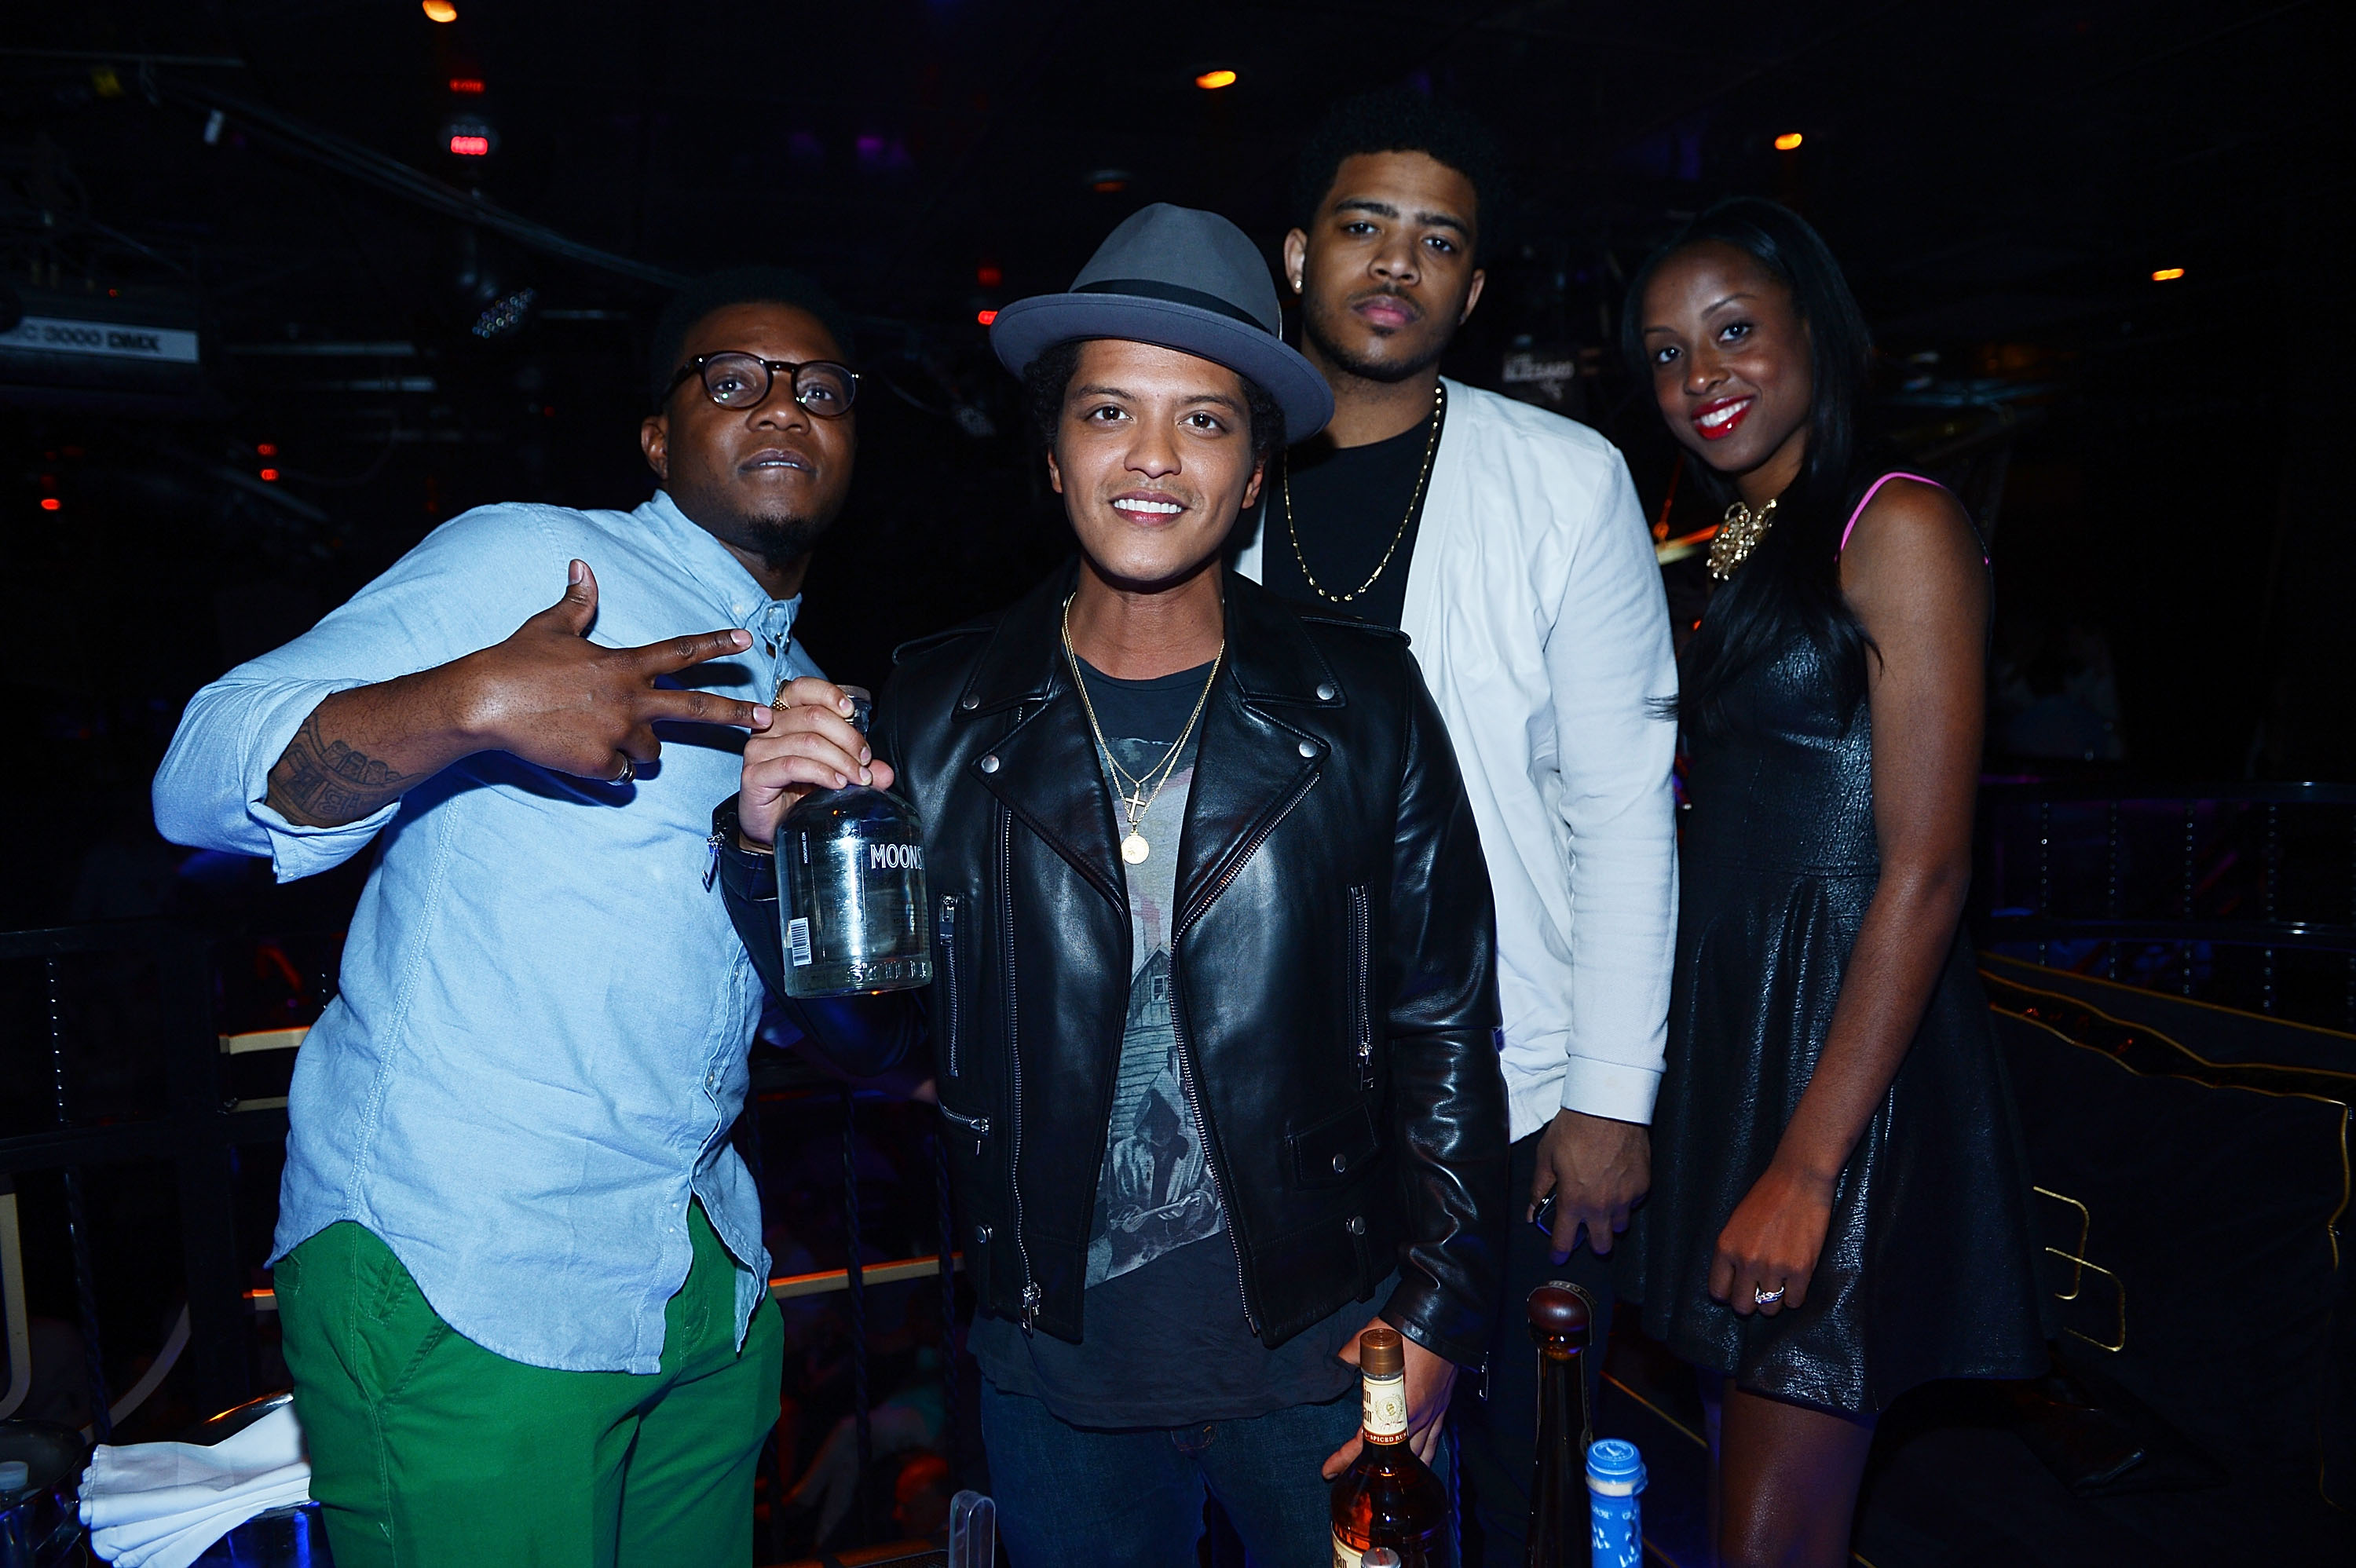 Bruno Mars Hosts At The Bank Nightclub at the Bellagio Hotel And Casino